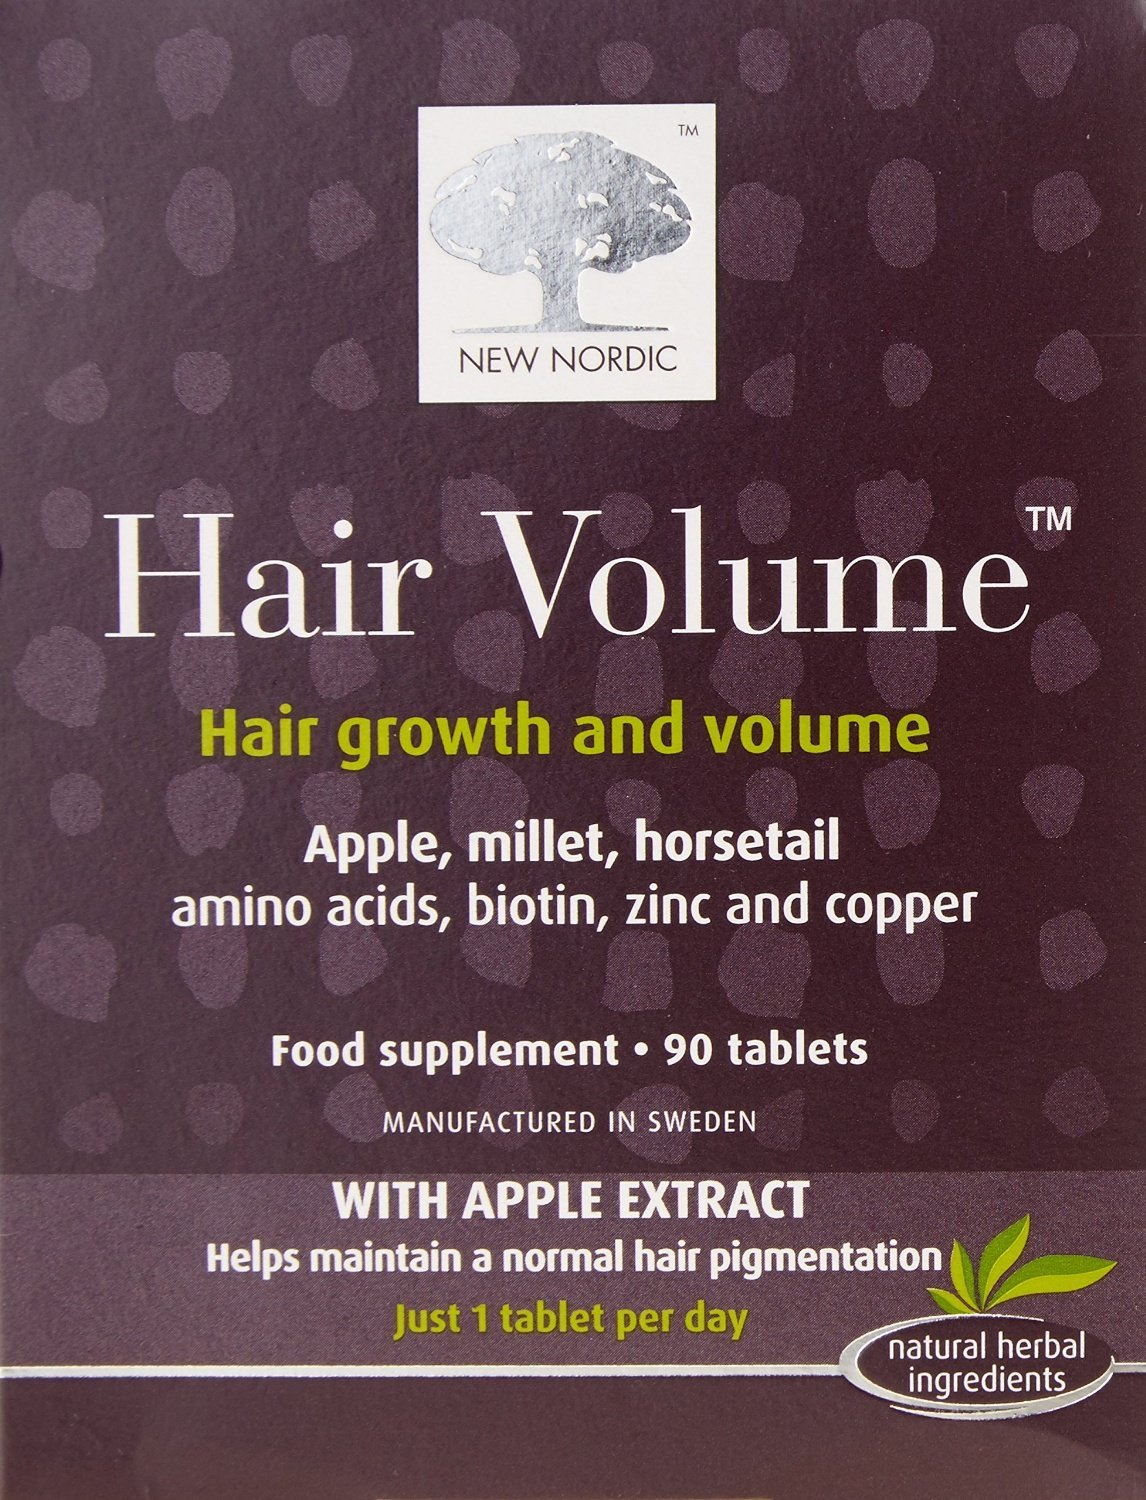 (3 PACK) - New Nordic Hair Volume Hair Tablet Supplement | 90s | 3 PACK - SUPER SAVER - SAVE MONEY